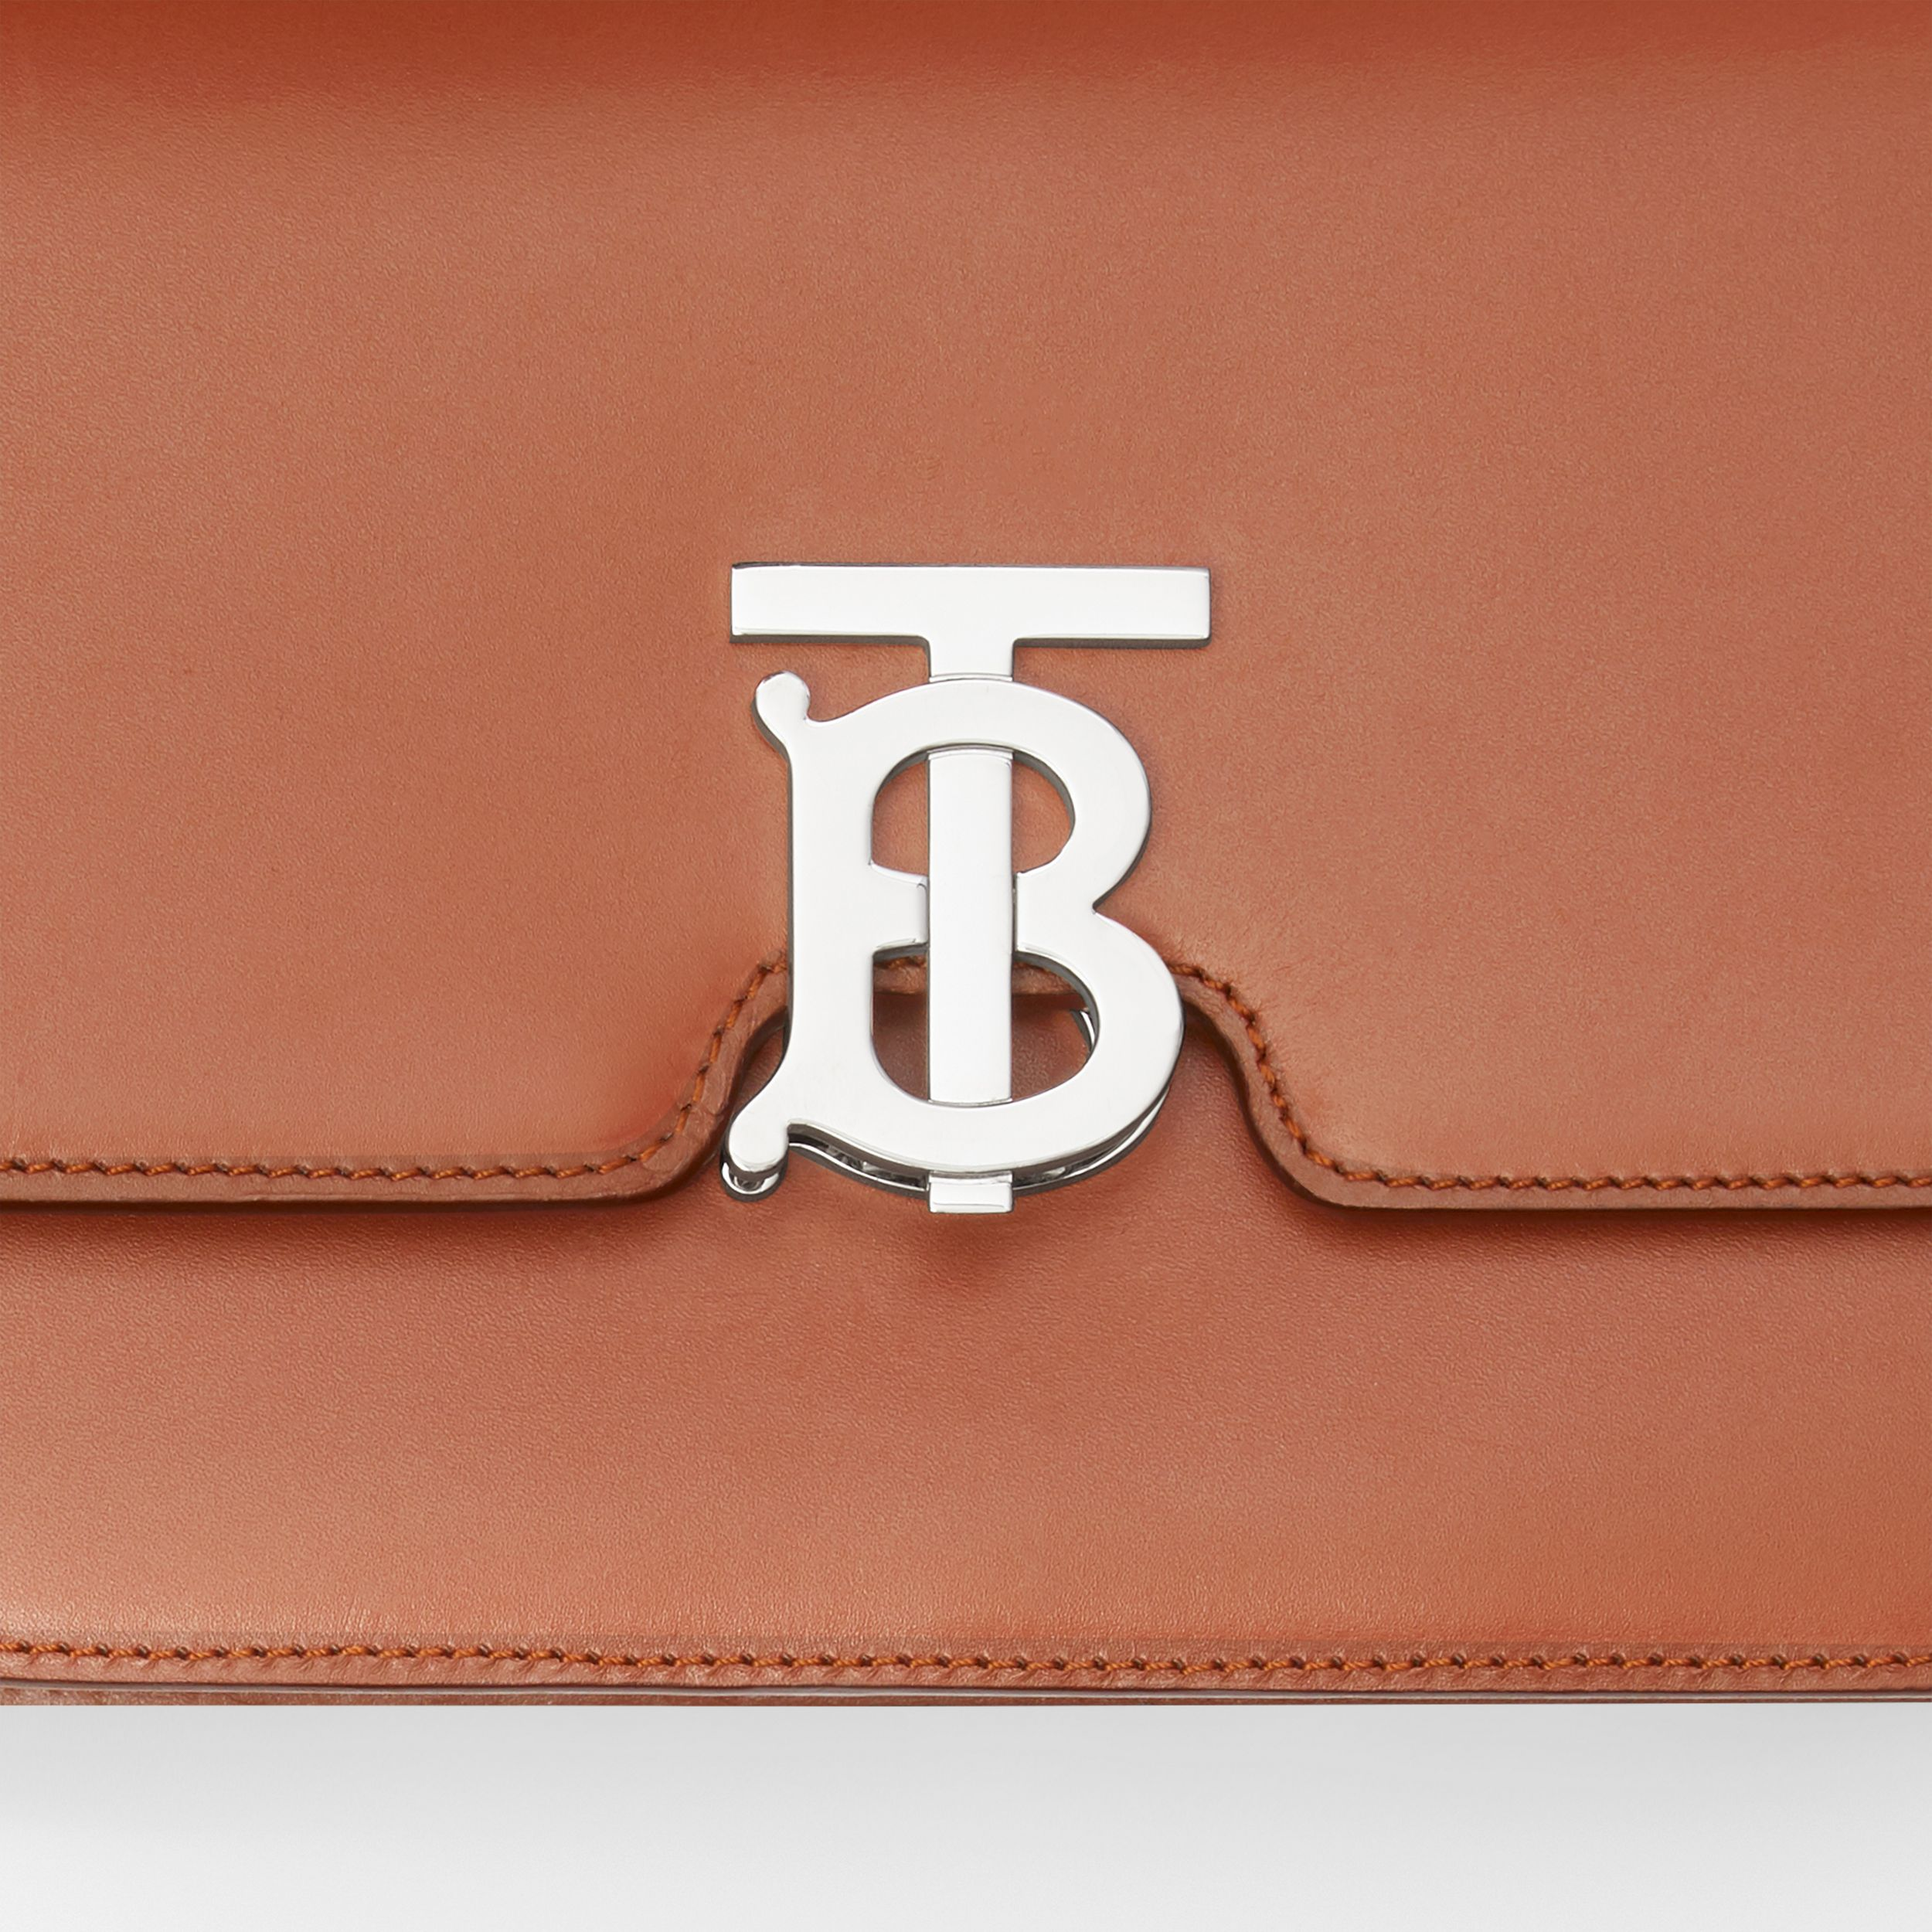 Small Leather TB Bag in Malt Brown - Women | Burberry - 2